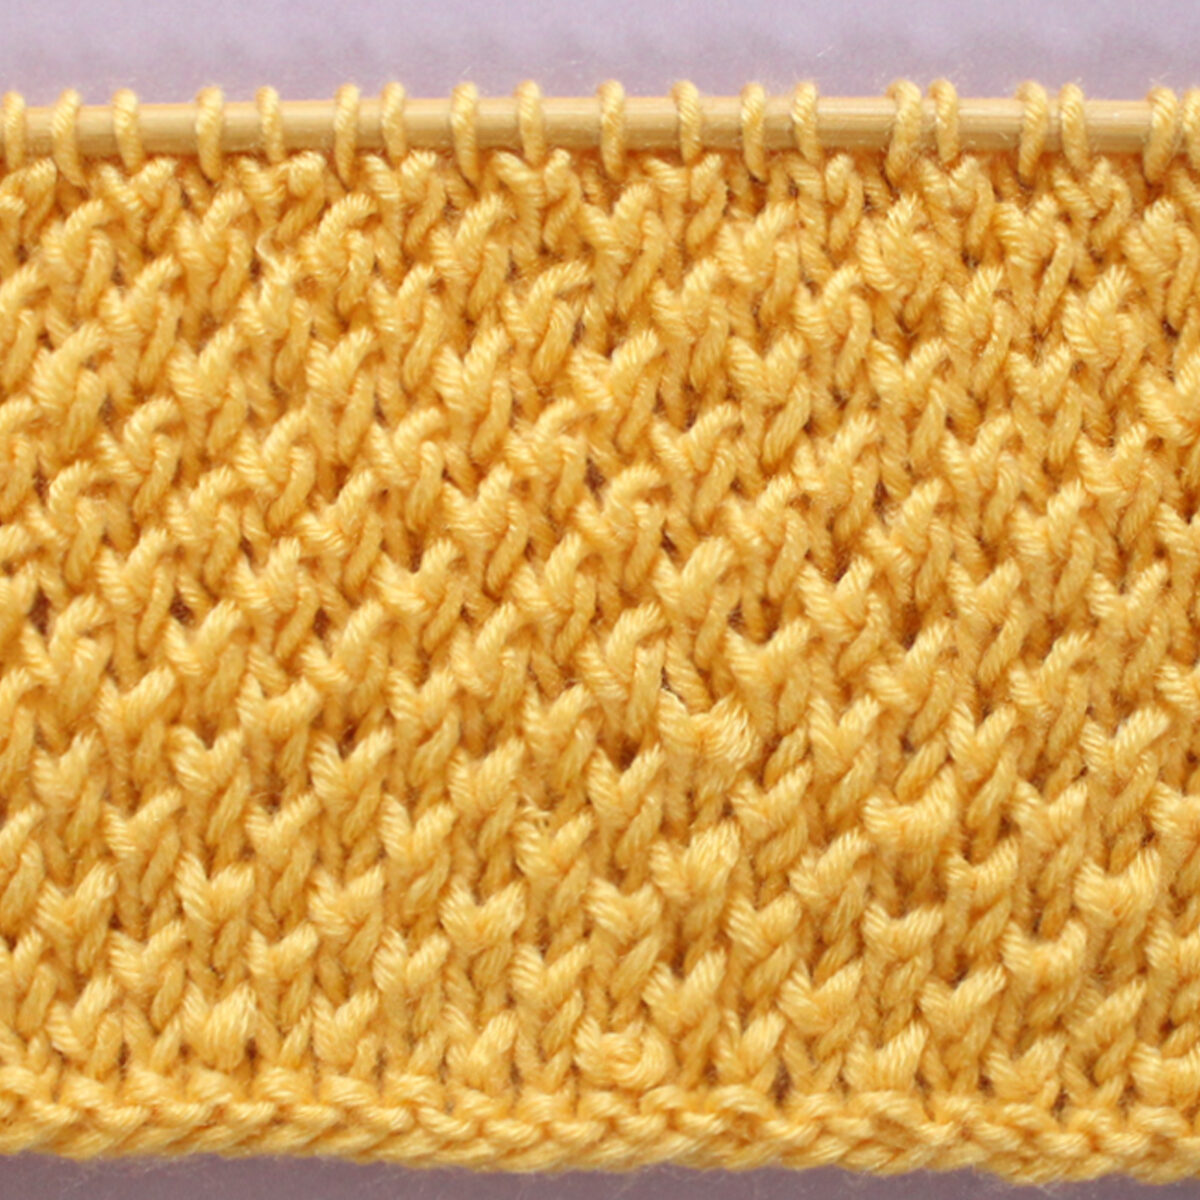 Bee Stitch Knitting Pattern texture in yellow color yarn on knitting needle.